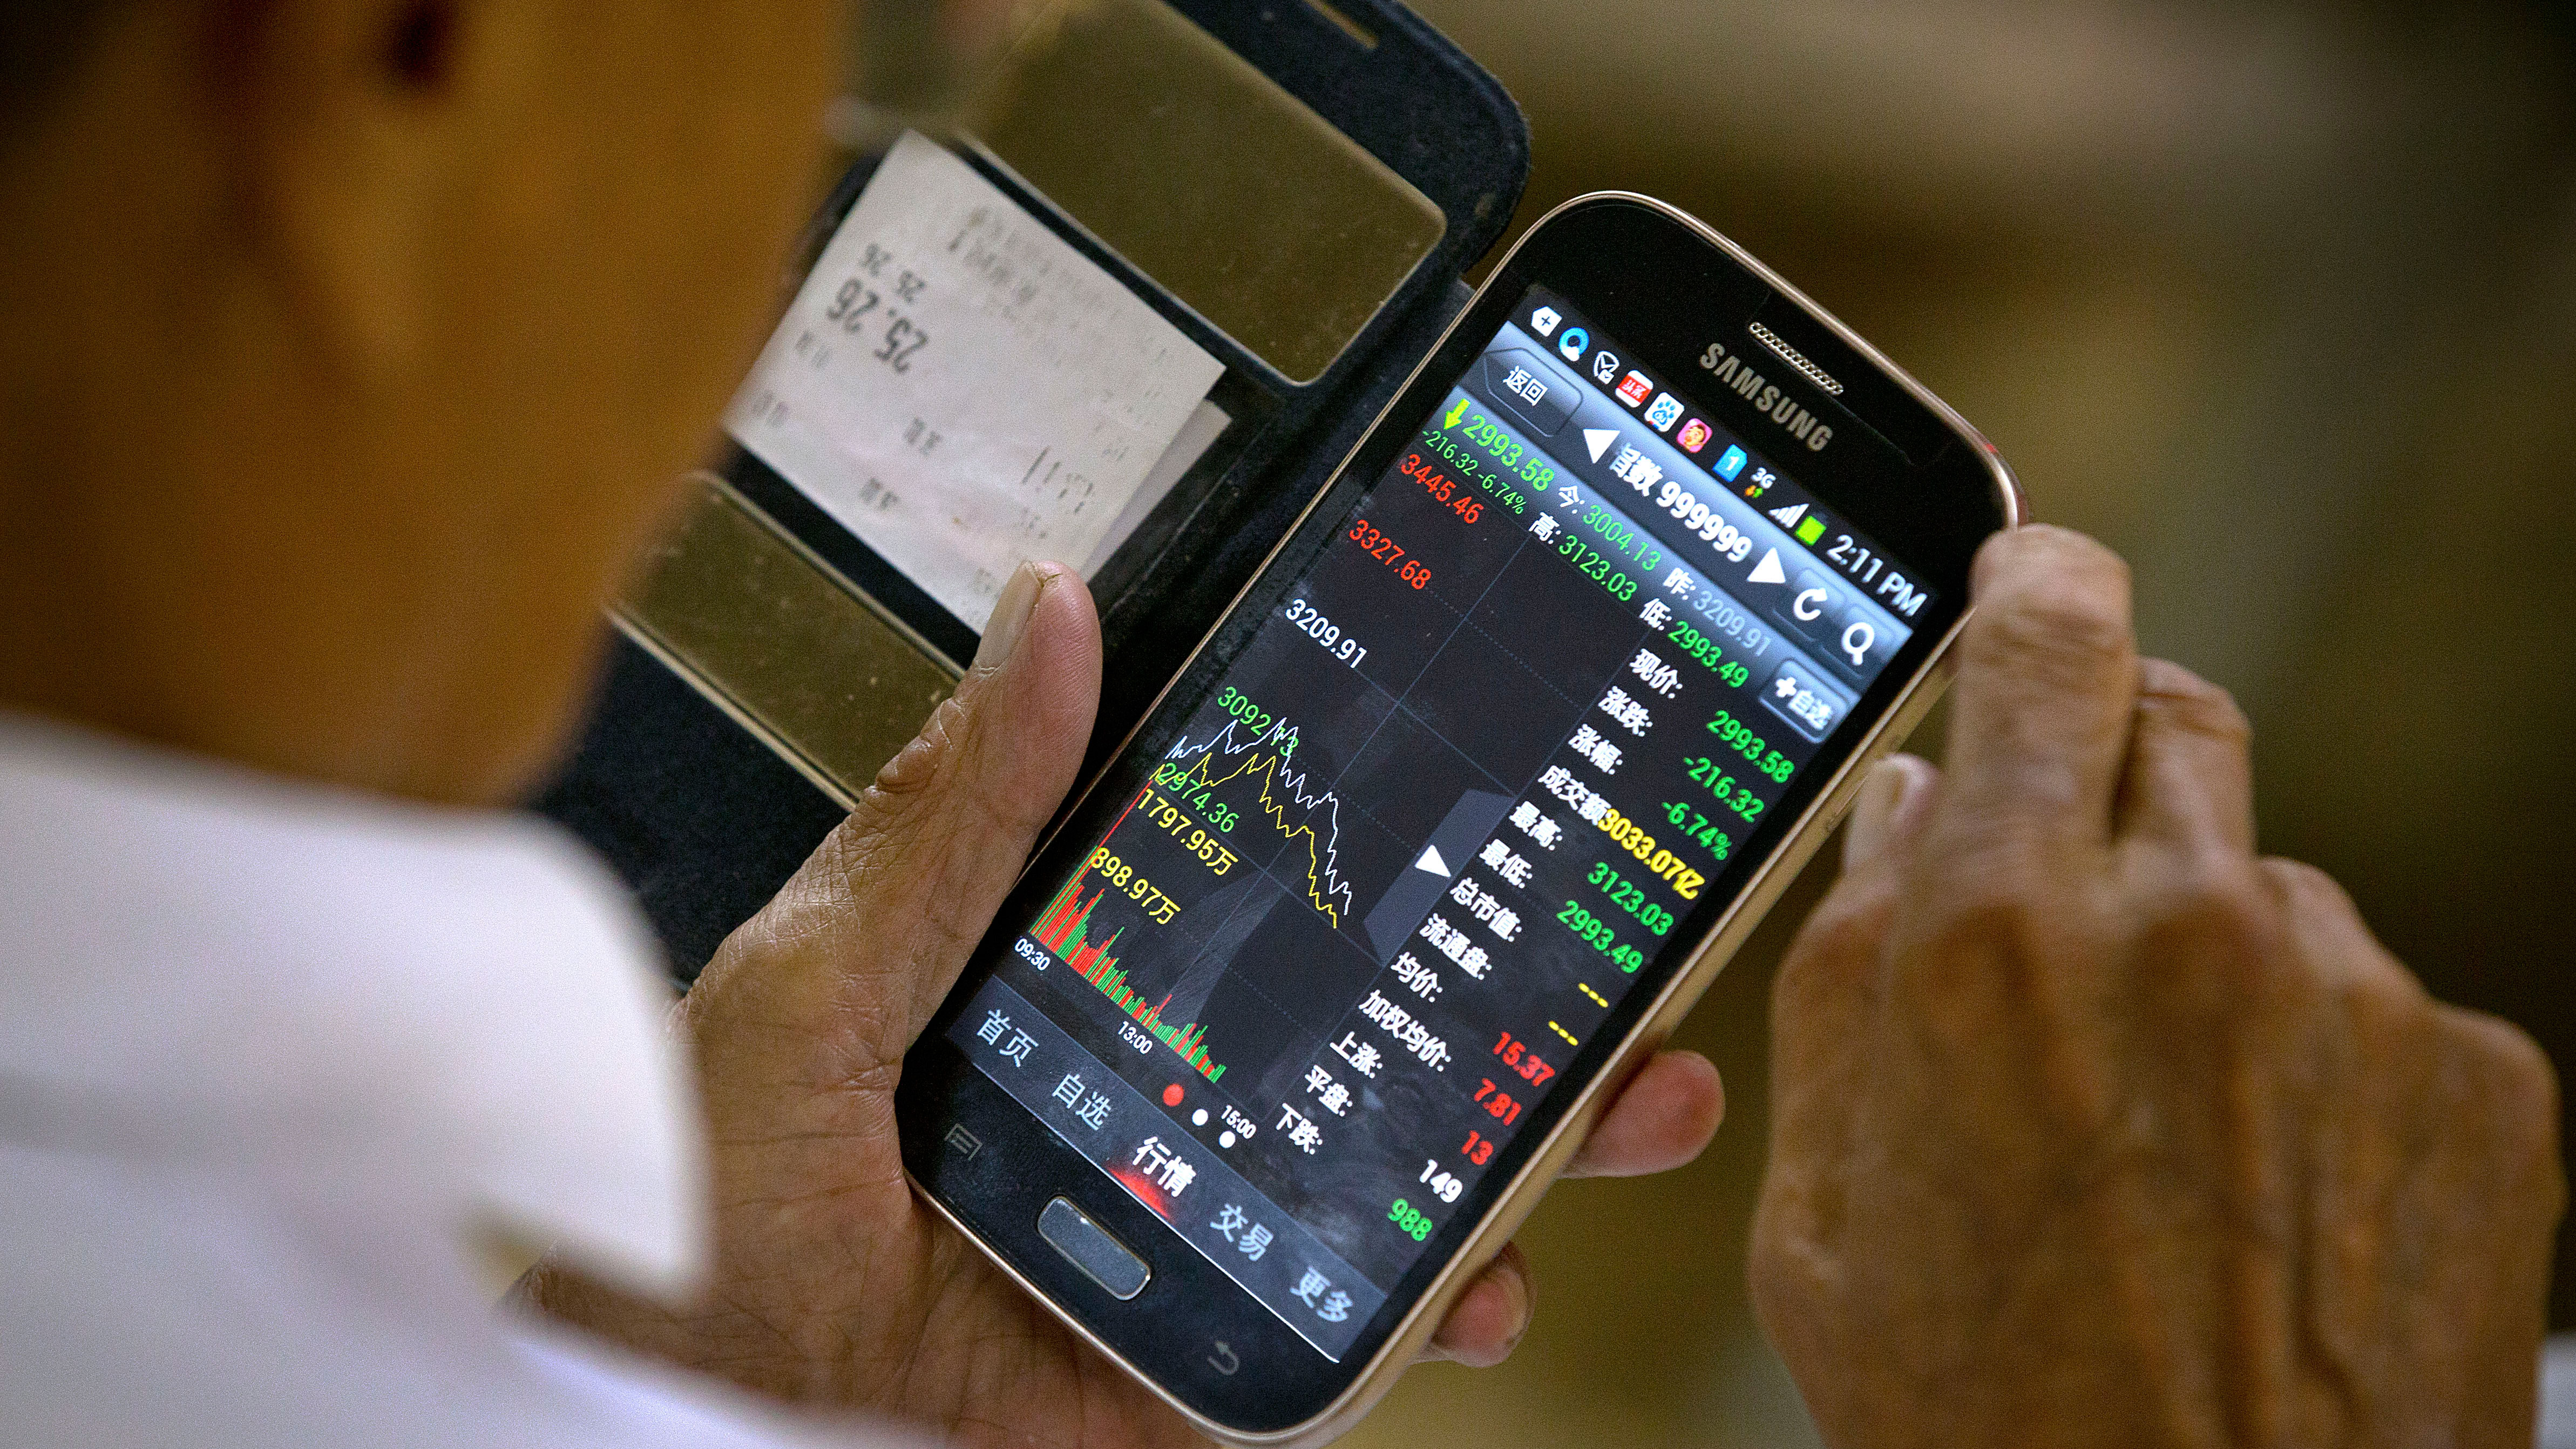 A Chinese investor uses his smartphone to monitor stock prices at a brokerage house in Beijing, Tuesday, Aug. 25, 2015. China's main stock market index has fallen for a fourth day, plunging 7.6 percent to an eight-month low. (AP Photo/Mark Schiefelbein)